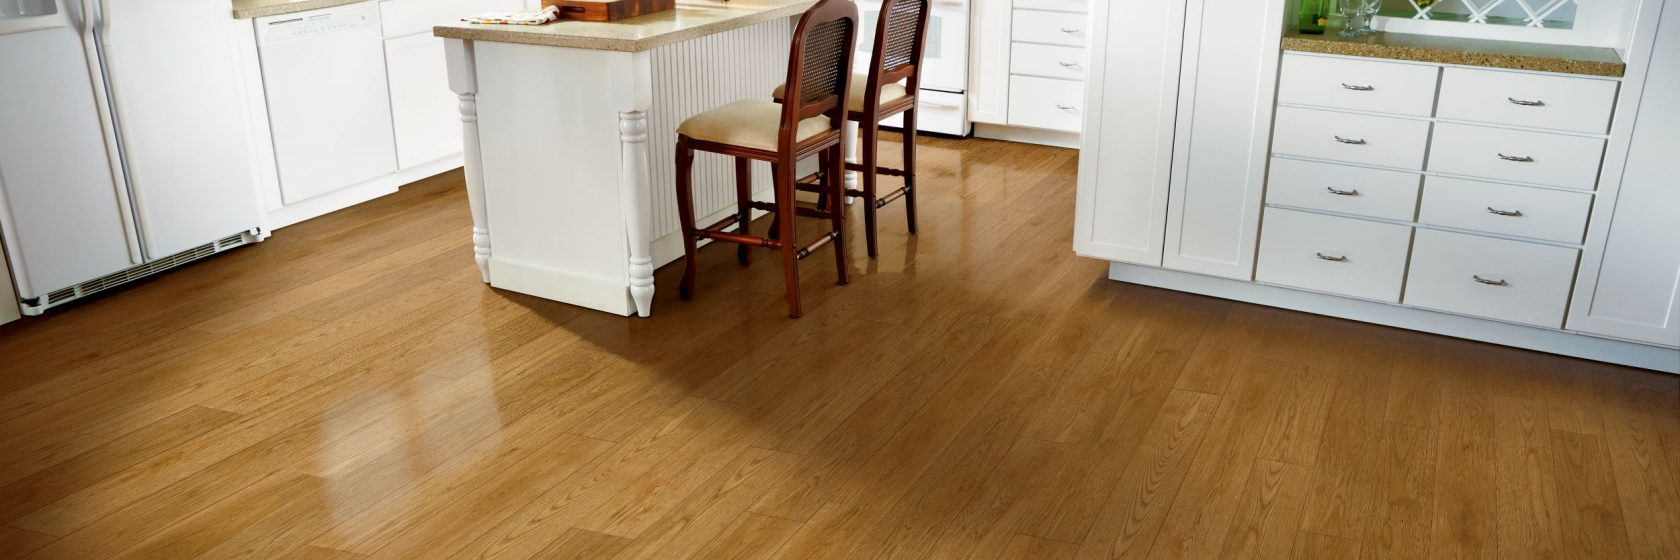 armstrong luxe plank floor cleaner luxe plank best. Black Bedroom Furniture Sets. Home Design Ideas